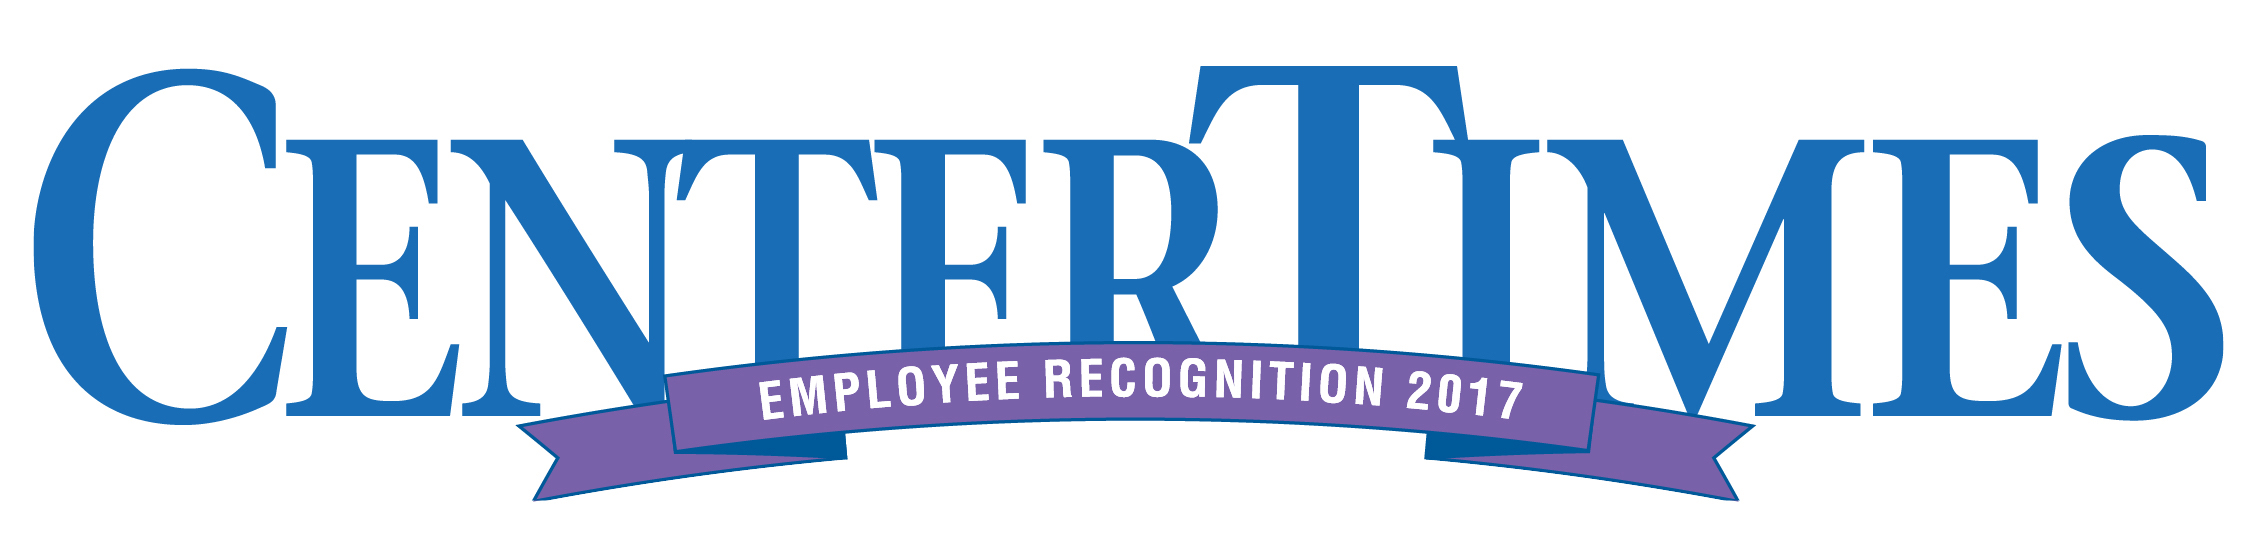 Center Times Employee Recognition 2017